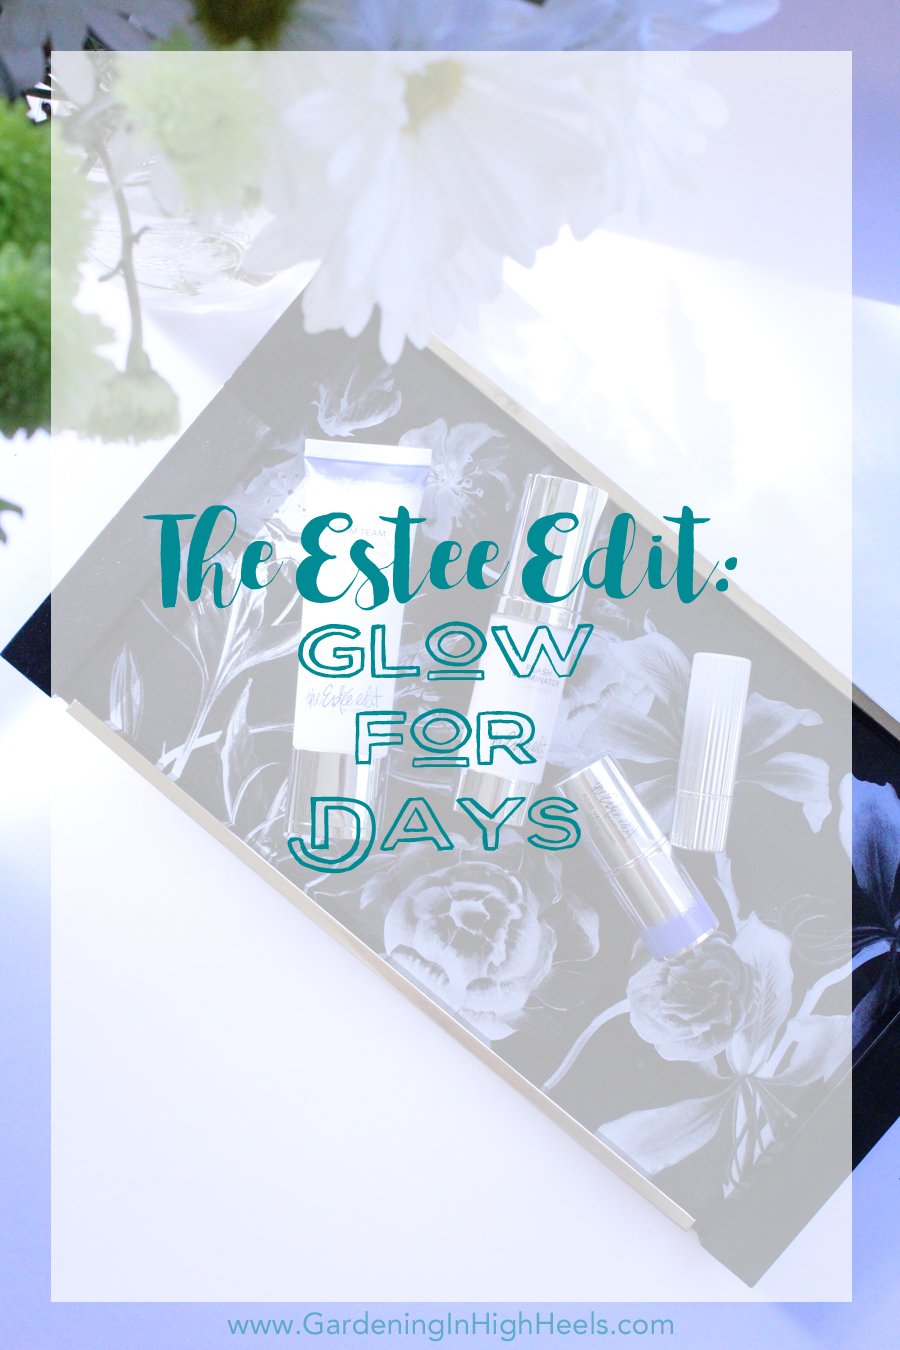 Highlighter junkies, rejoice! The Estee Edit has amazing products to get your glow on any time of the year. These products are so flattering for summer, though! Can't wait to try them!